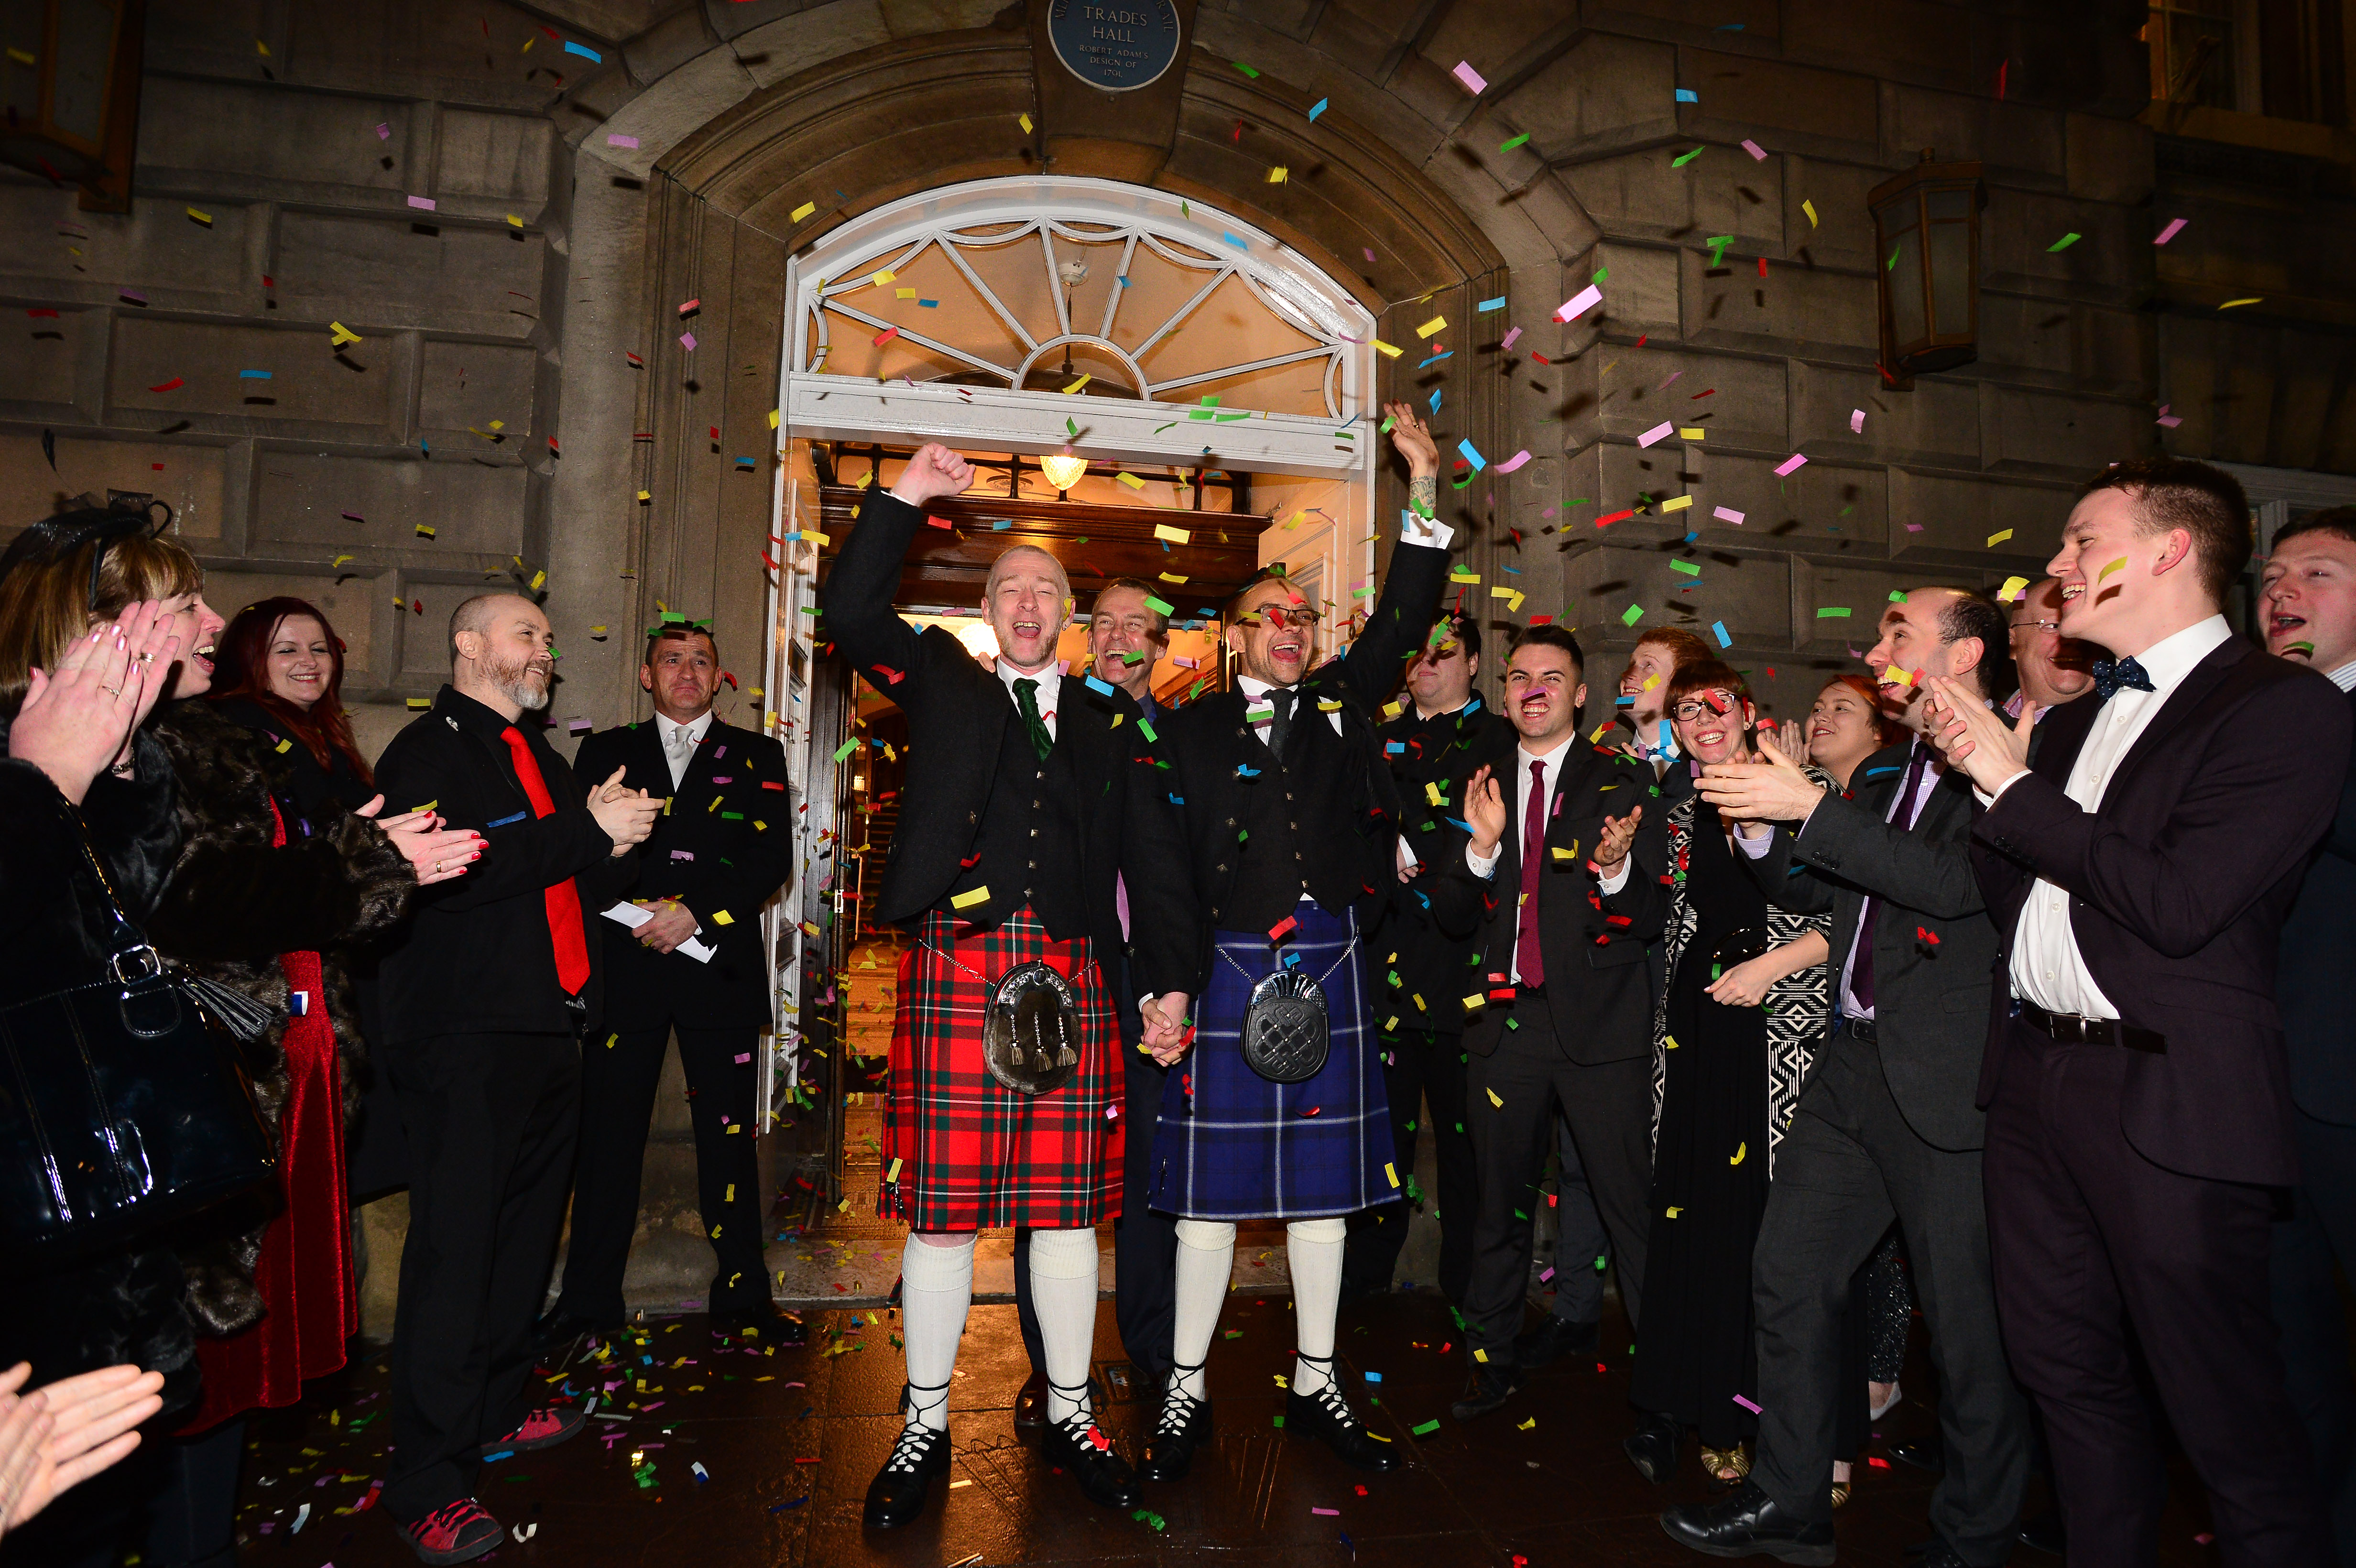 A same-sex couple Joe Schofield (blue kilt) and Malcolm Brown from Tullibody, Clackmannanshire are married shortly after midnight in front of friends and family in one of the first same-sex and belief category weddings in Scotland on Dec. 31, 2014 in Glasgow, Scotland.